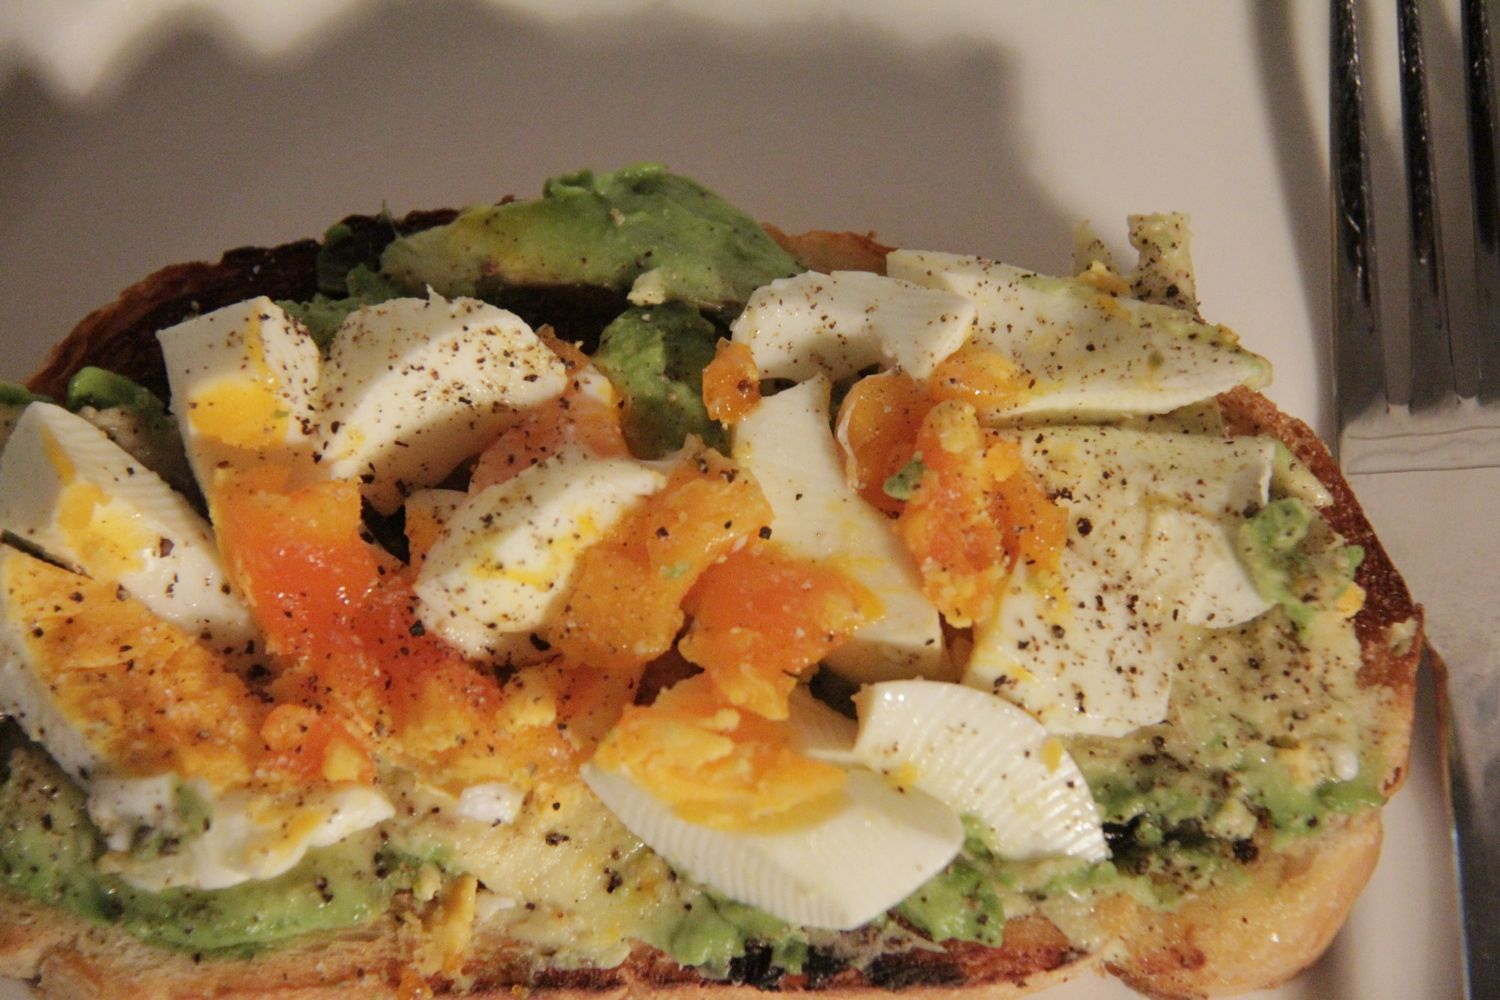 Boiled egg and avocado on toast